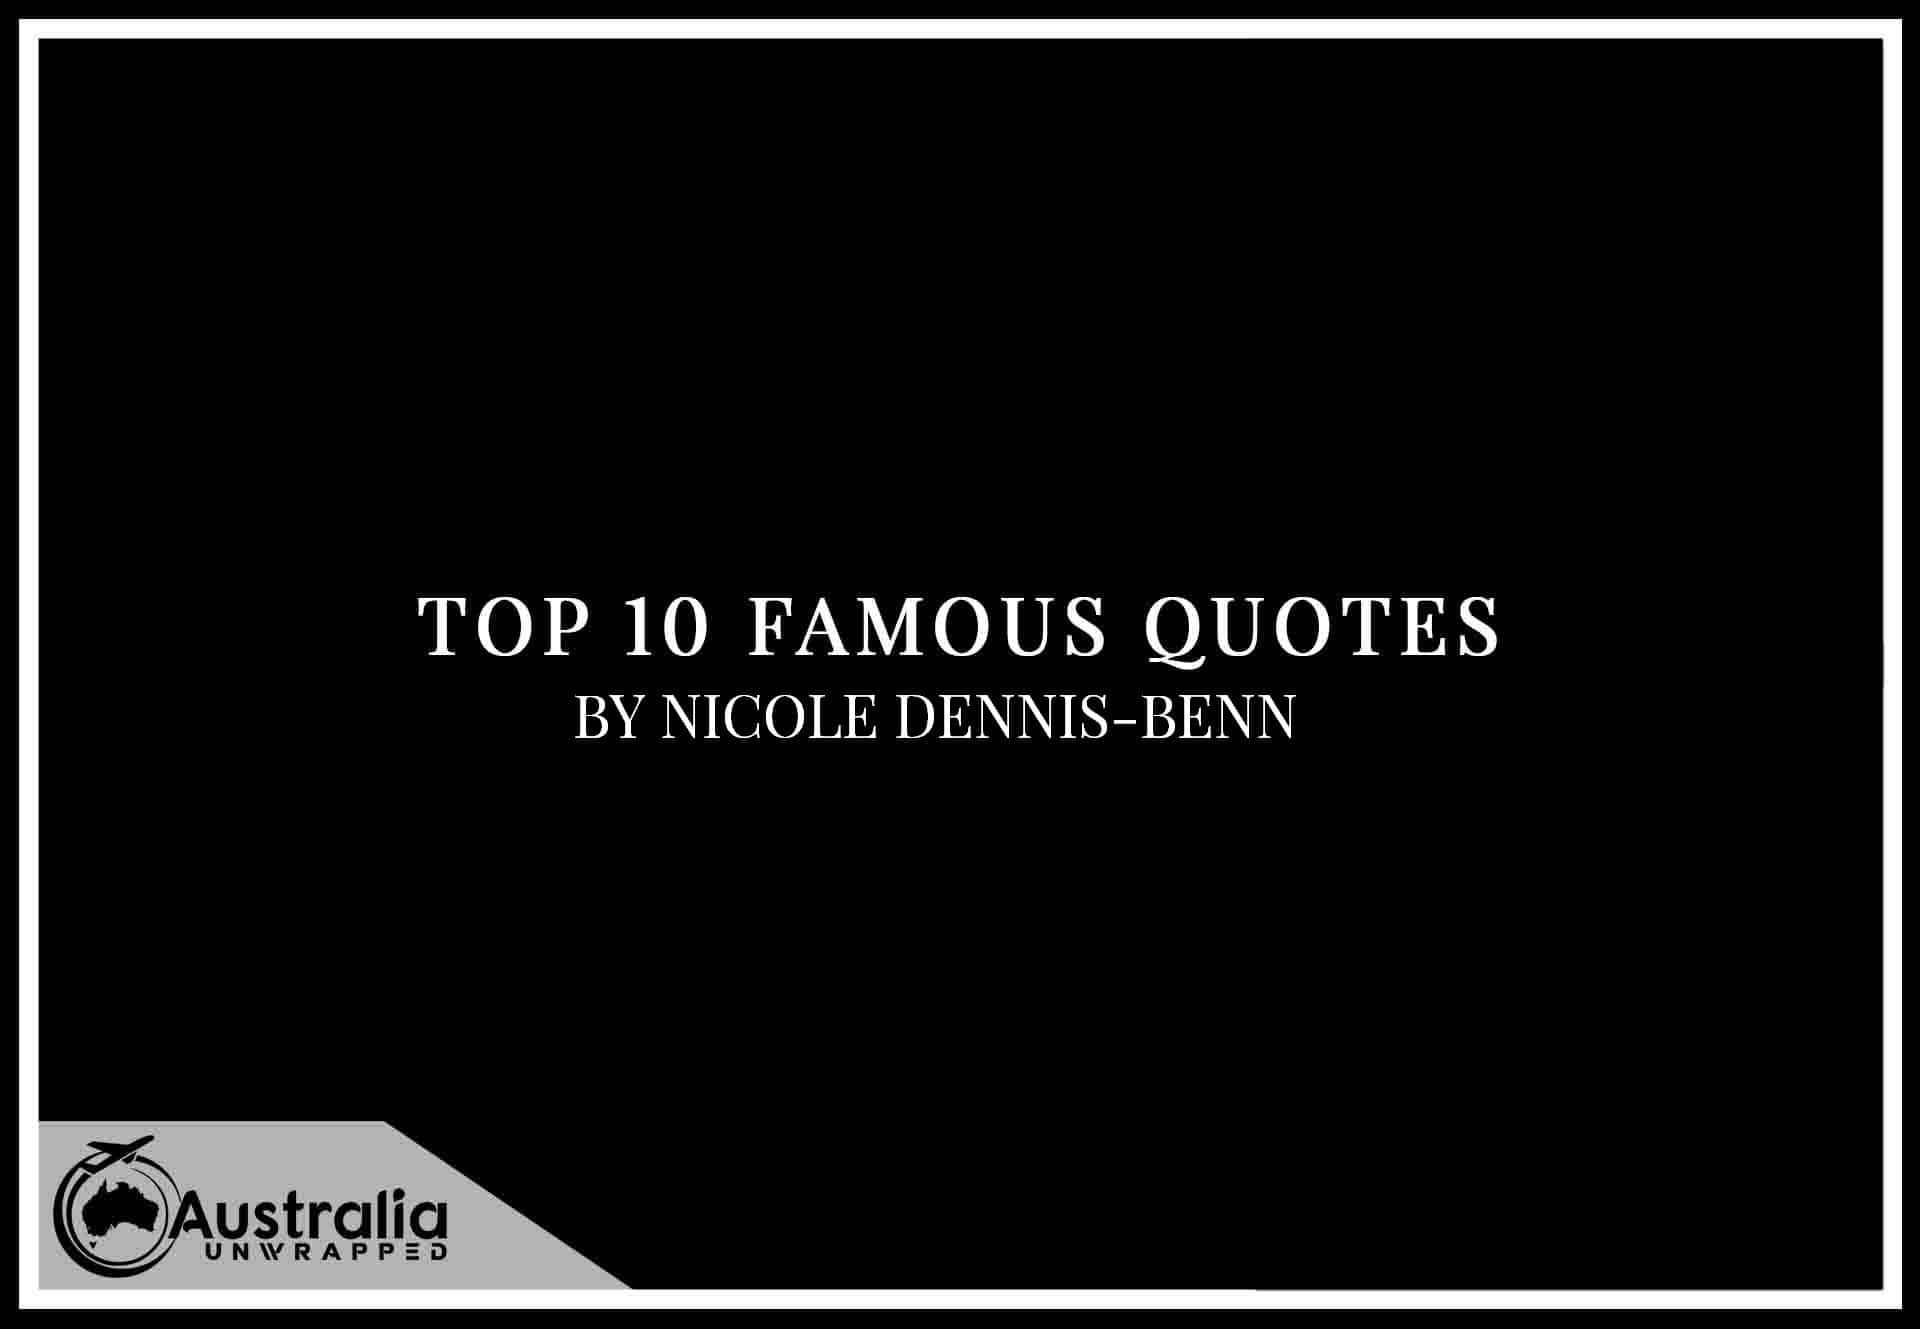 Top 10 Famous Quotes by Author Nicole Dennis-Benn